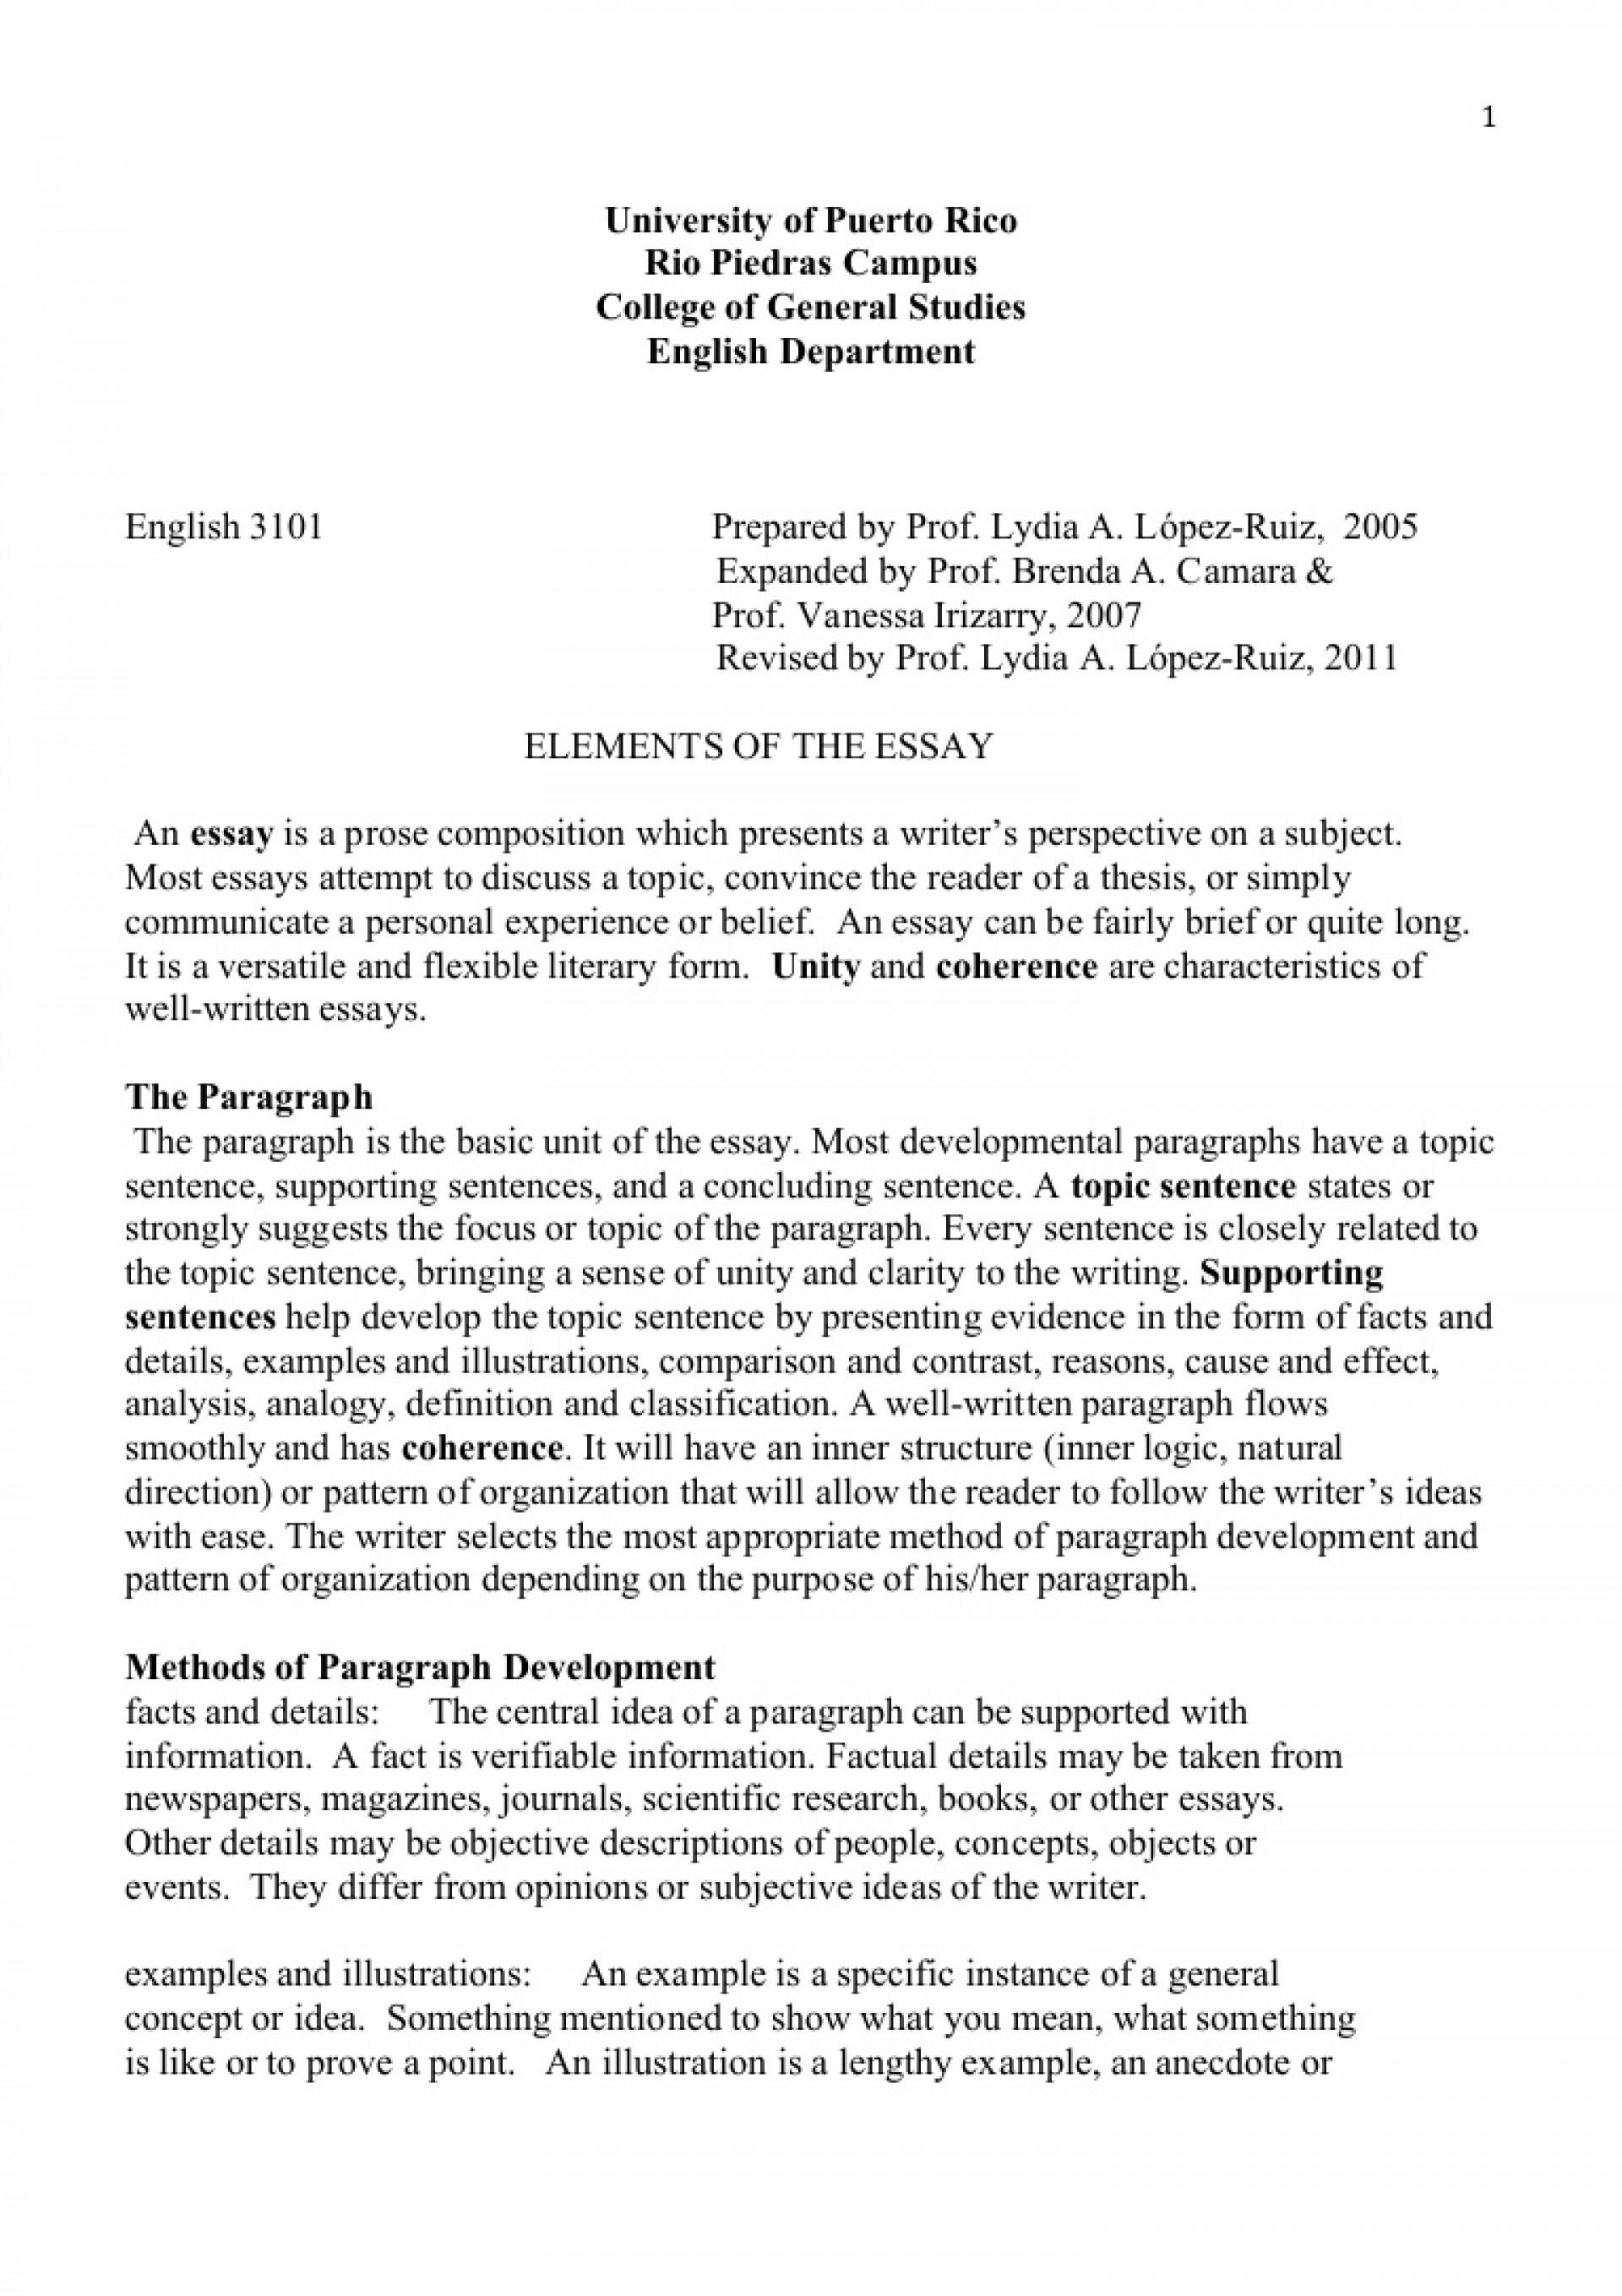 017 Essay Example Concept Topics Ll Vi Elementsoftheessay Phpapp01 Thumbnail Rare Explanation Explaining A 1920